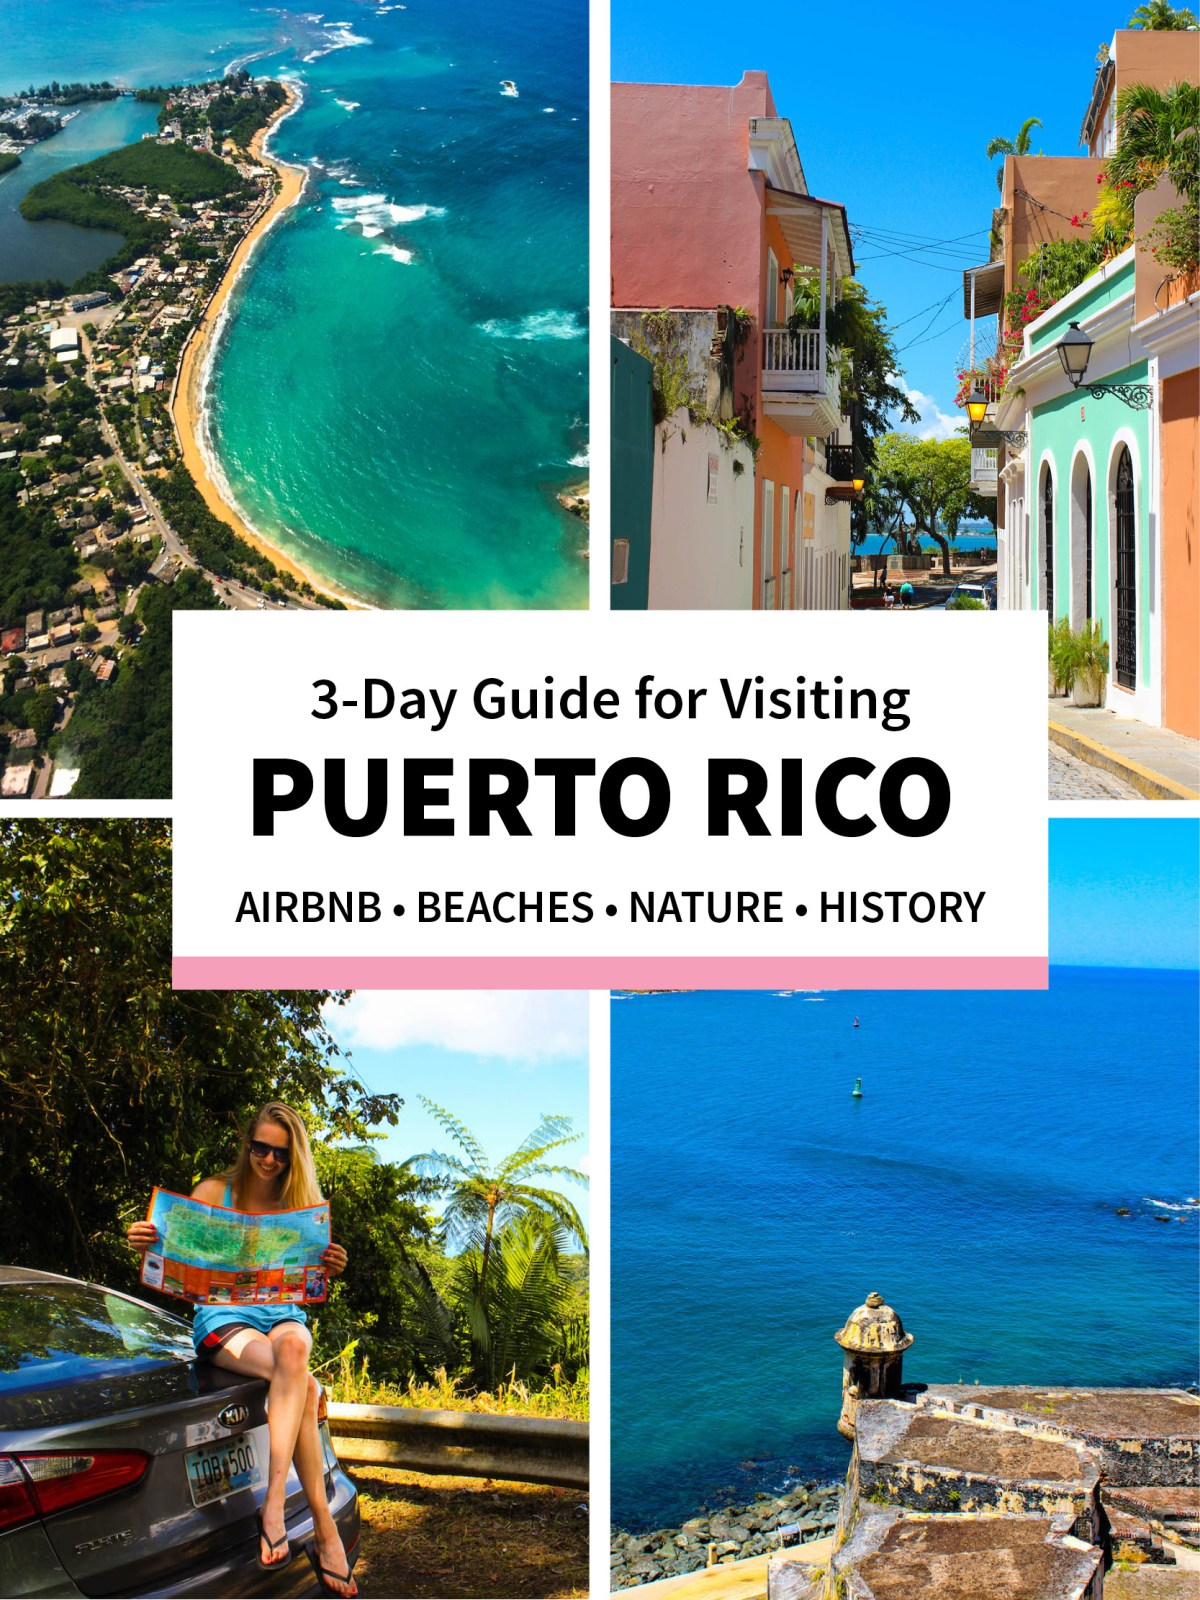 Puerto Rico Travel Guide - 3 Days with AirBnB